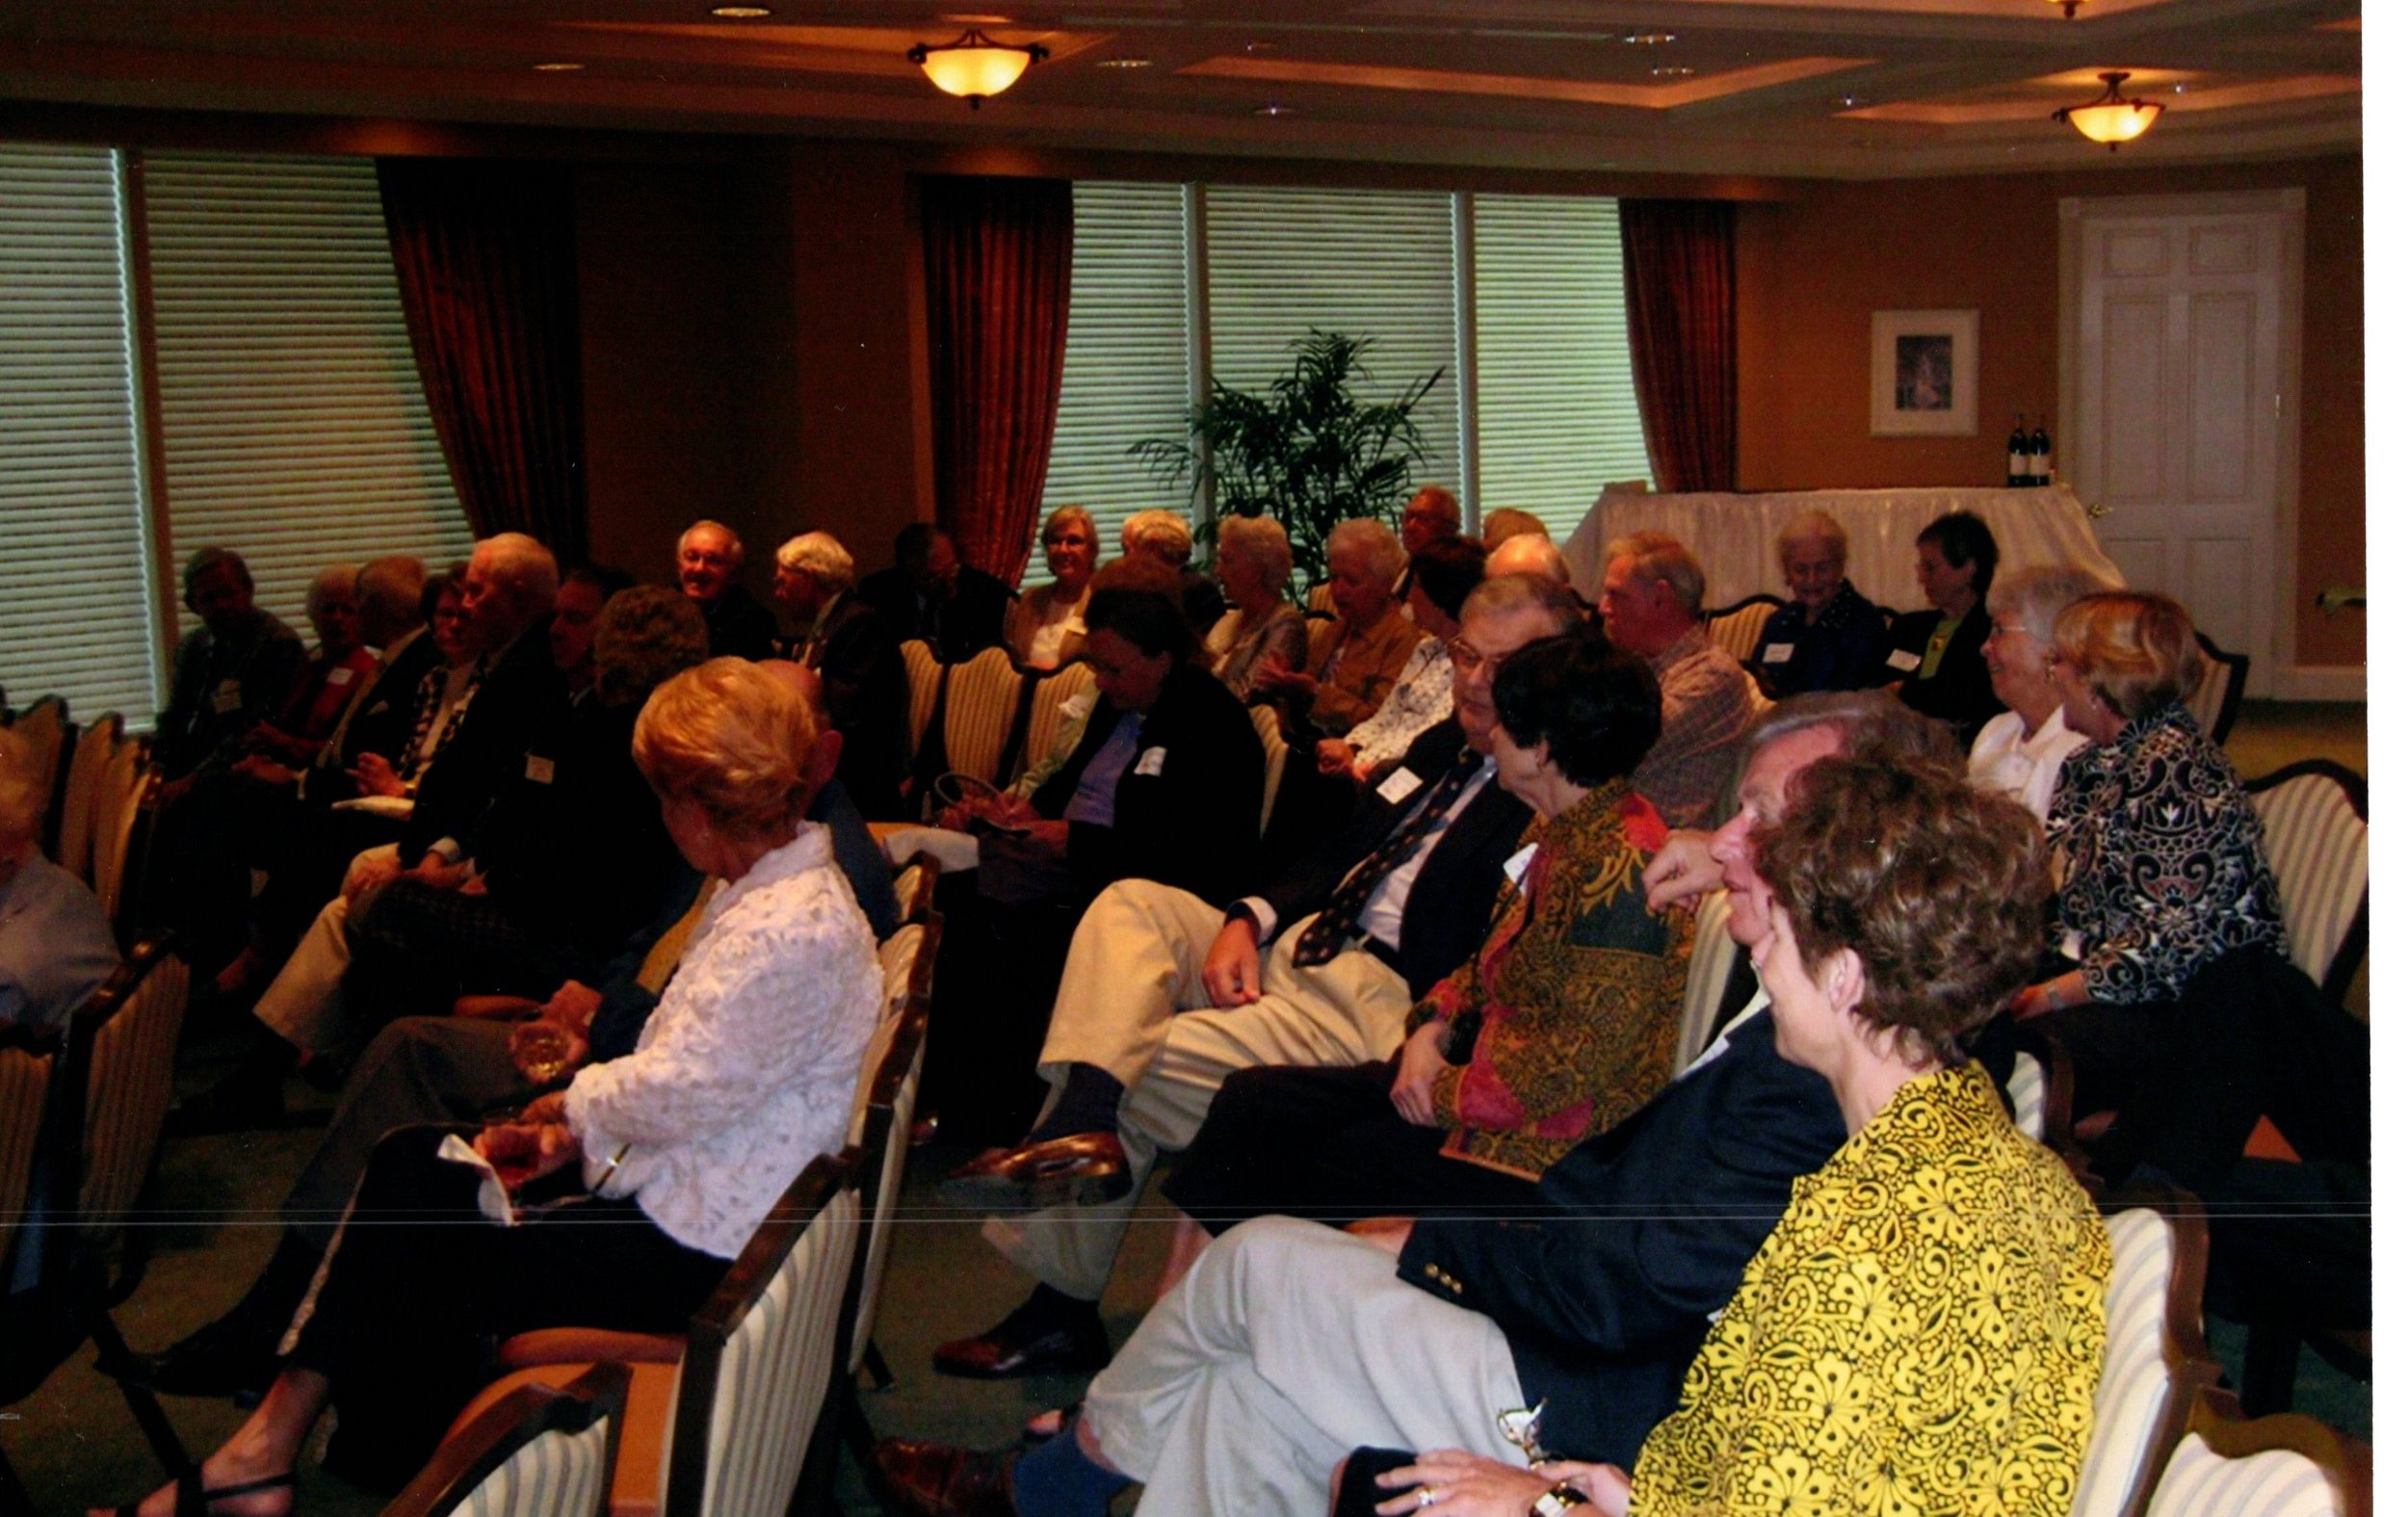 1_25_2009 - LECTURE BY DR. IAN SHAPIRO - NORTHERN TRUST CO. 4.jpg